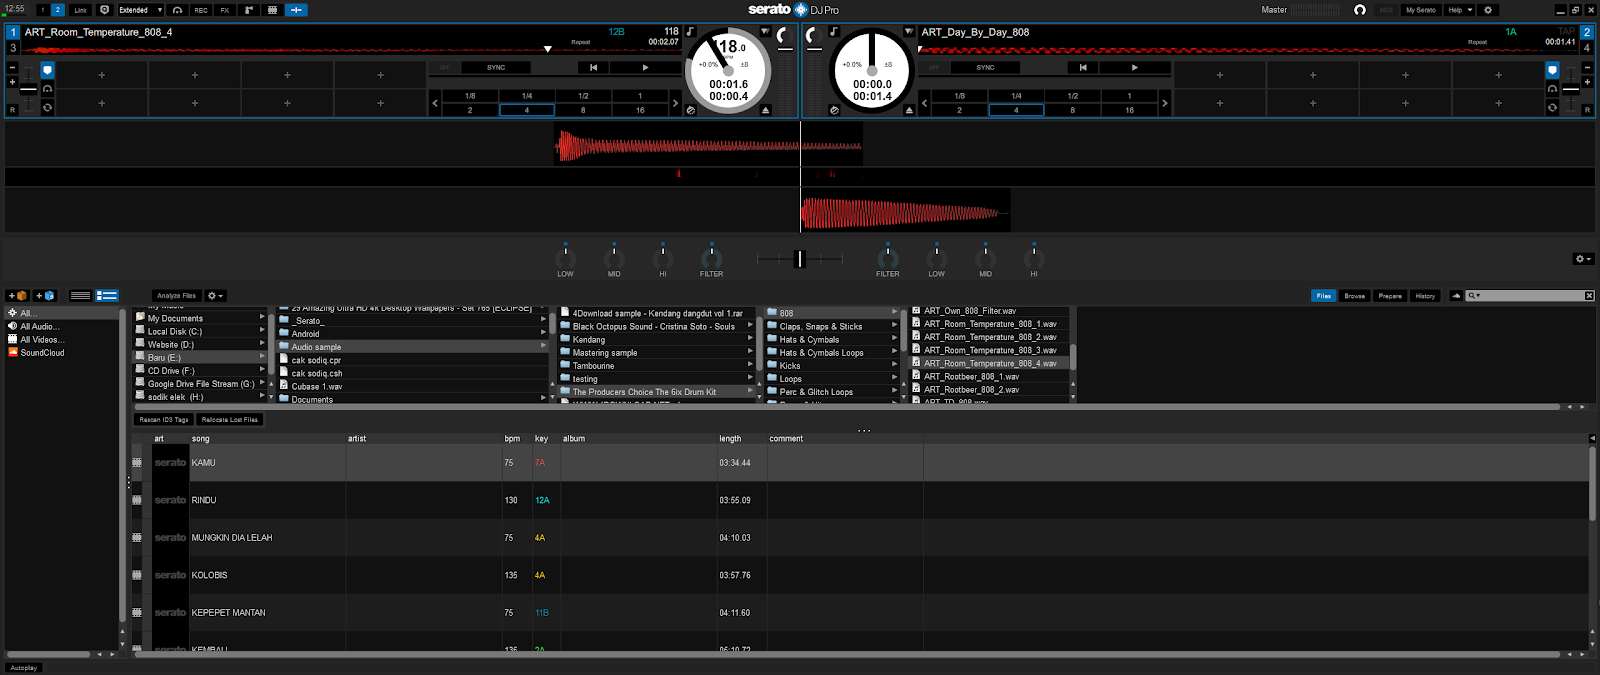 Serato DJ Pro 2.3.6 Crack License Key With Activation Key Full Download